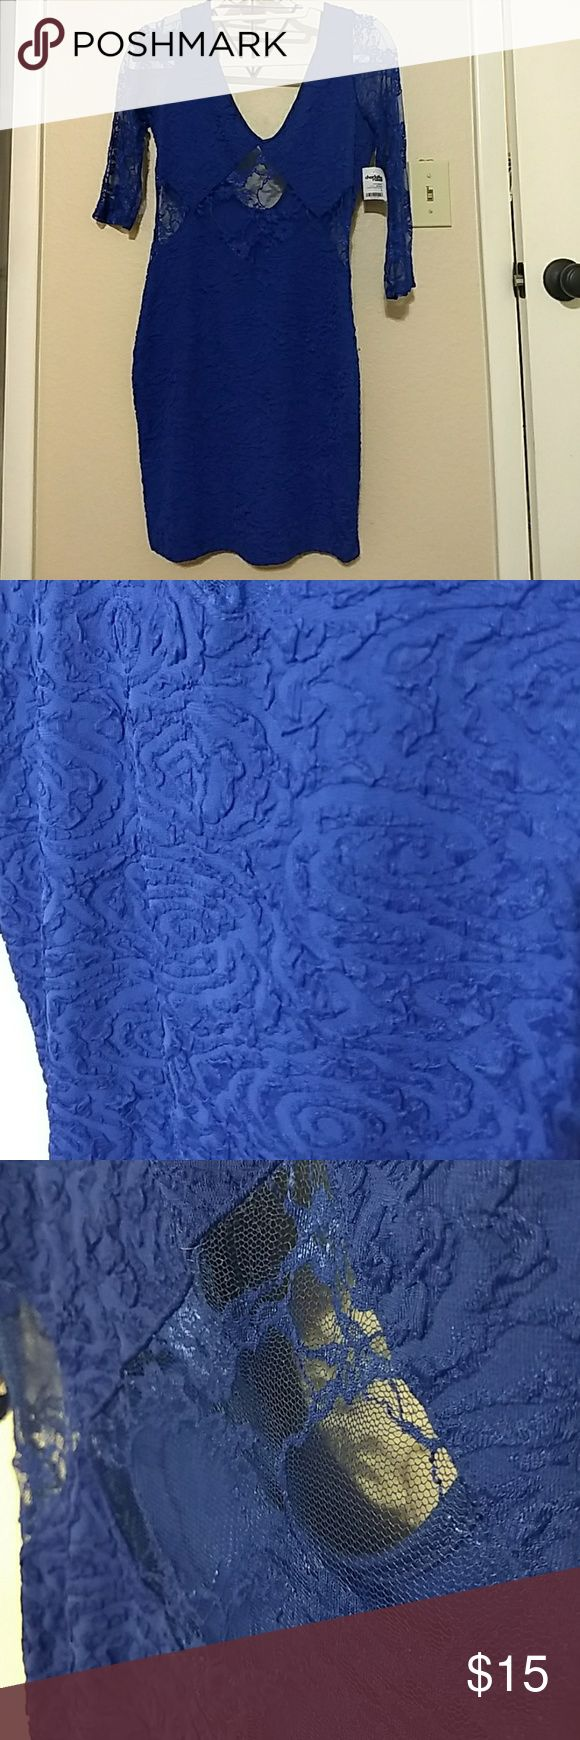 Blue night out dress *never worn* tags still attached Royal blue dress. She cut outs around waist with floral lace. Same on arms. 3/4 sleeve. Stretch material Charlotte Russe Dresses Mini